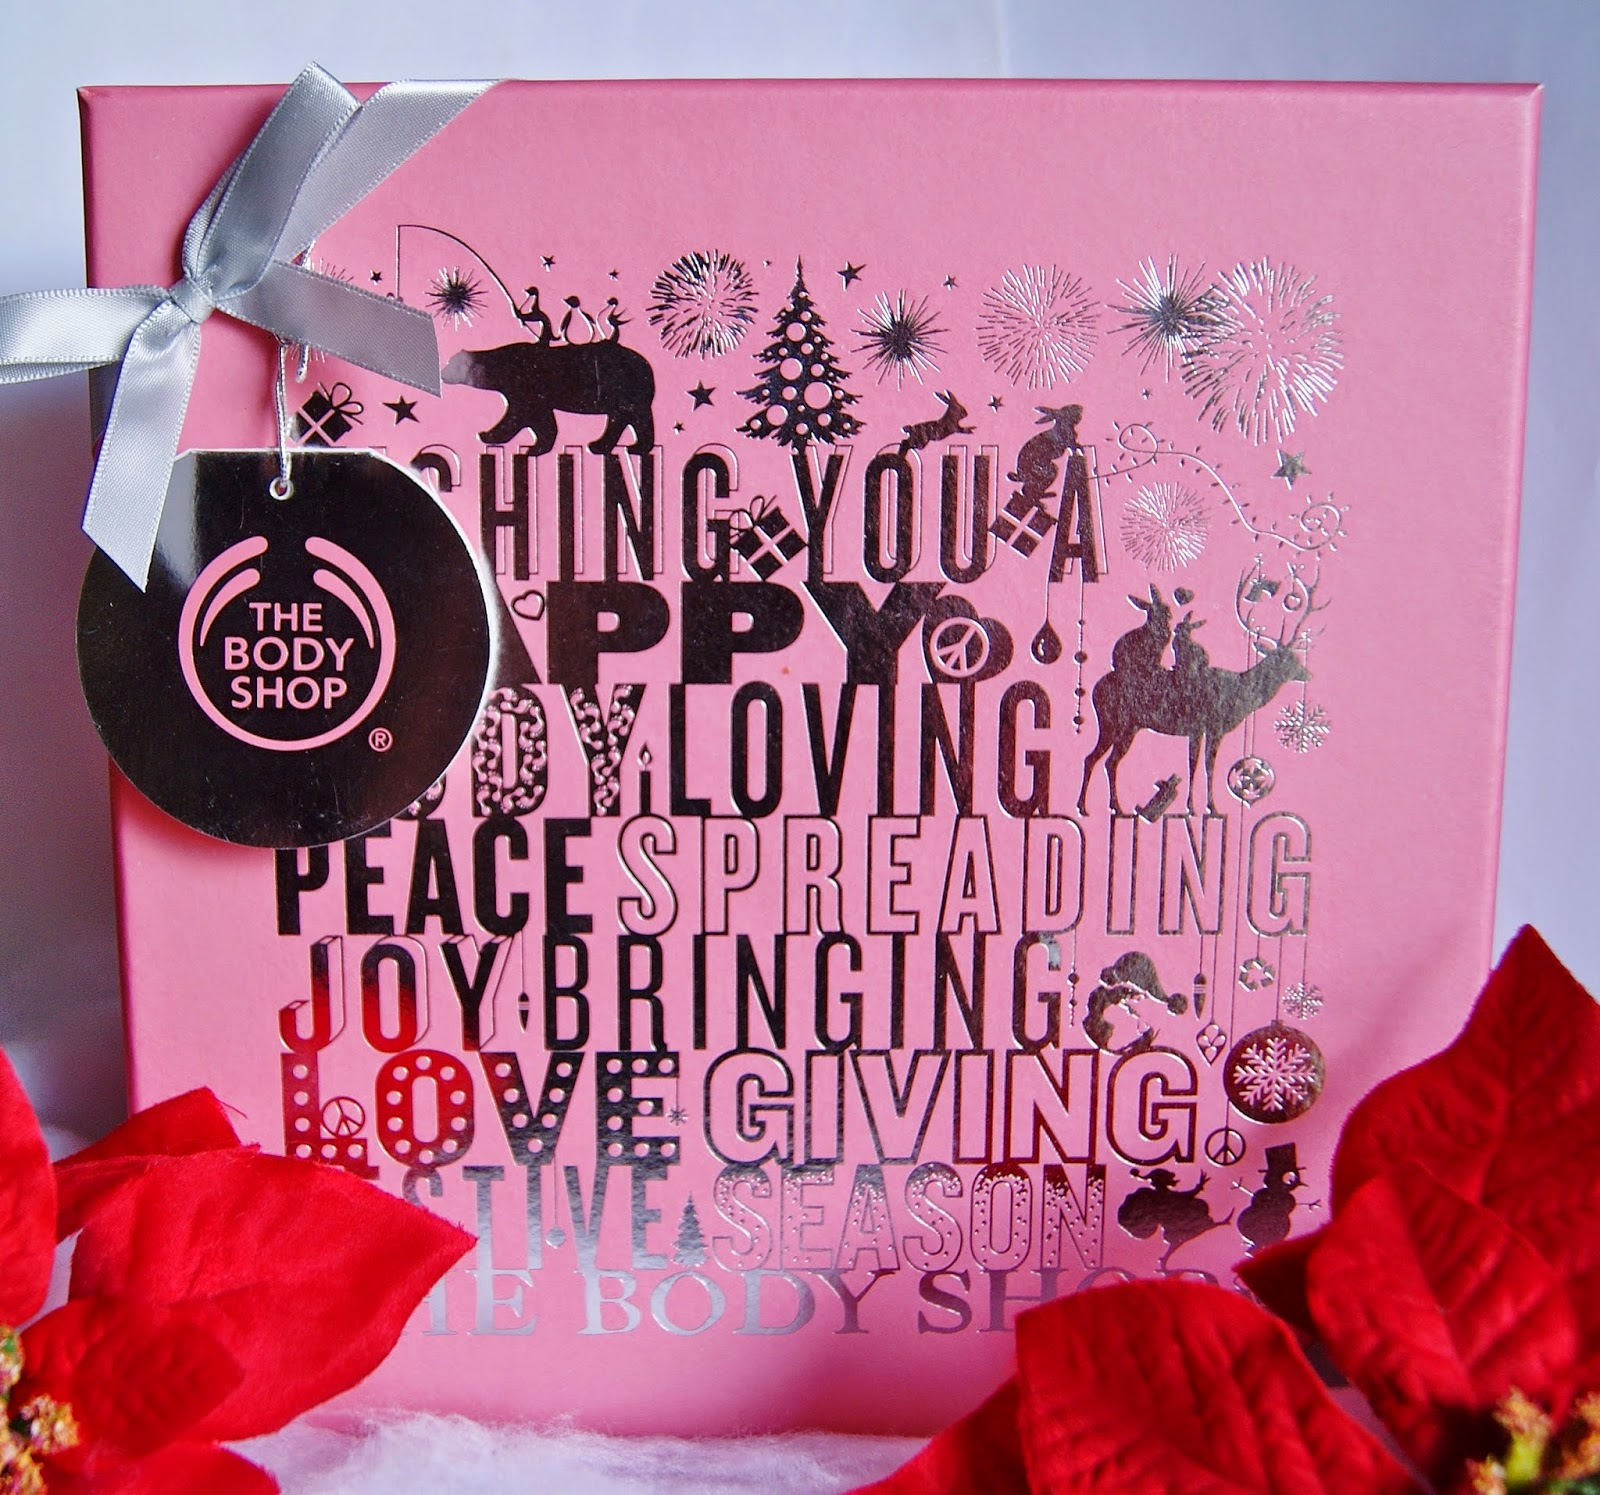 Pink Grapefruit Festive Pick Gift Set from The Body Shop  beauty  skincare   washThe Purple Scarf  Skincare Review  Fabulous Christmas Gift Ideas  . Bath And Body Shop Toronto. Home Design Ideas